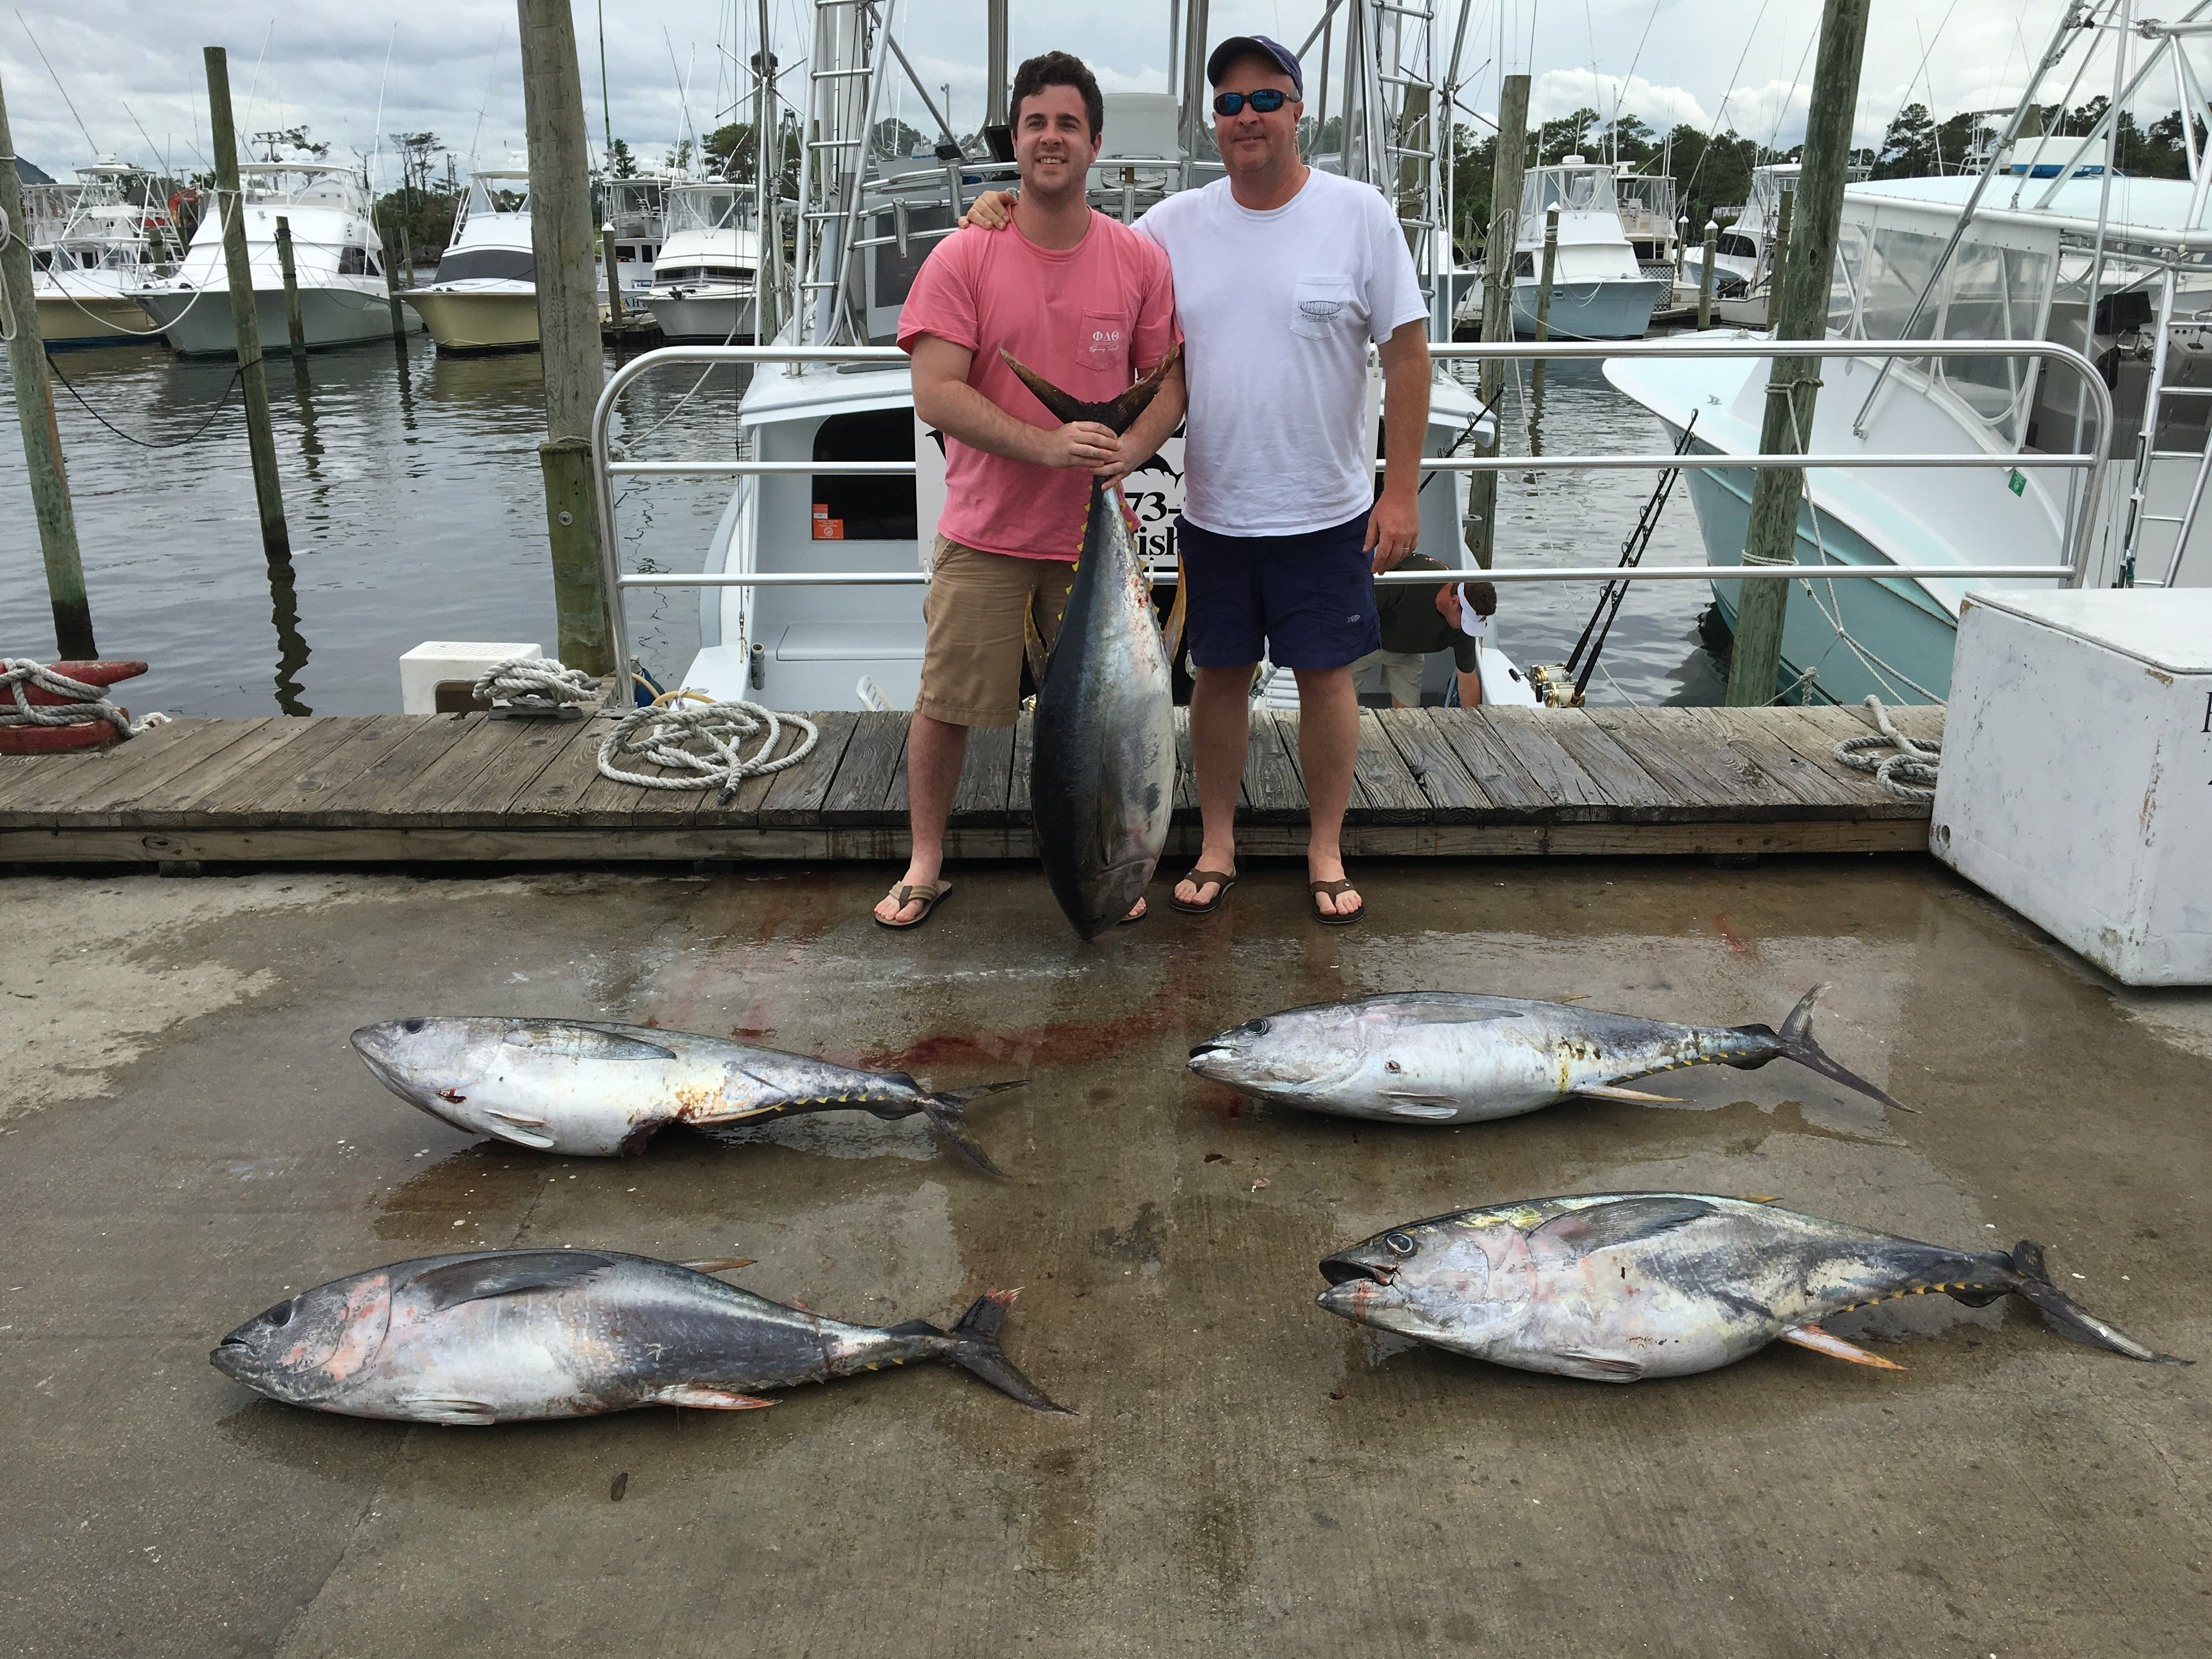 6 21 2017 june 21 2017 obx marina outer banks for Obx fishing report